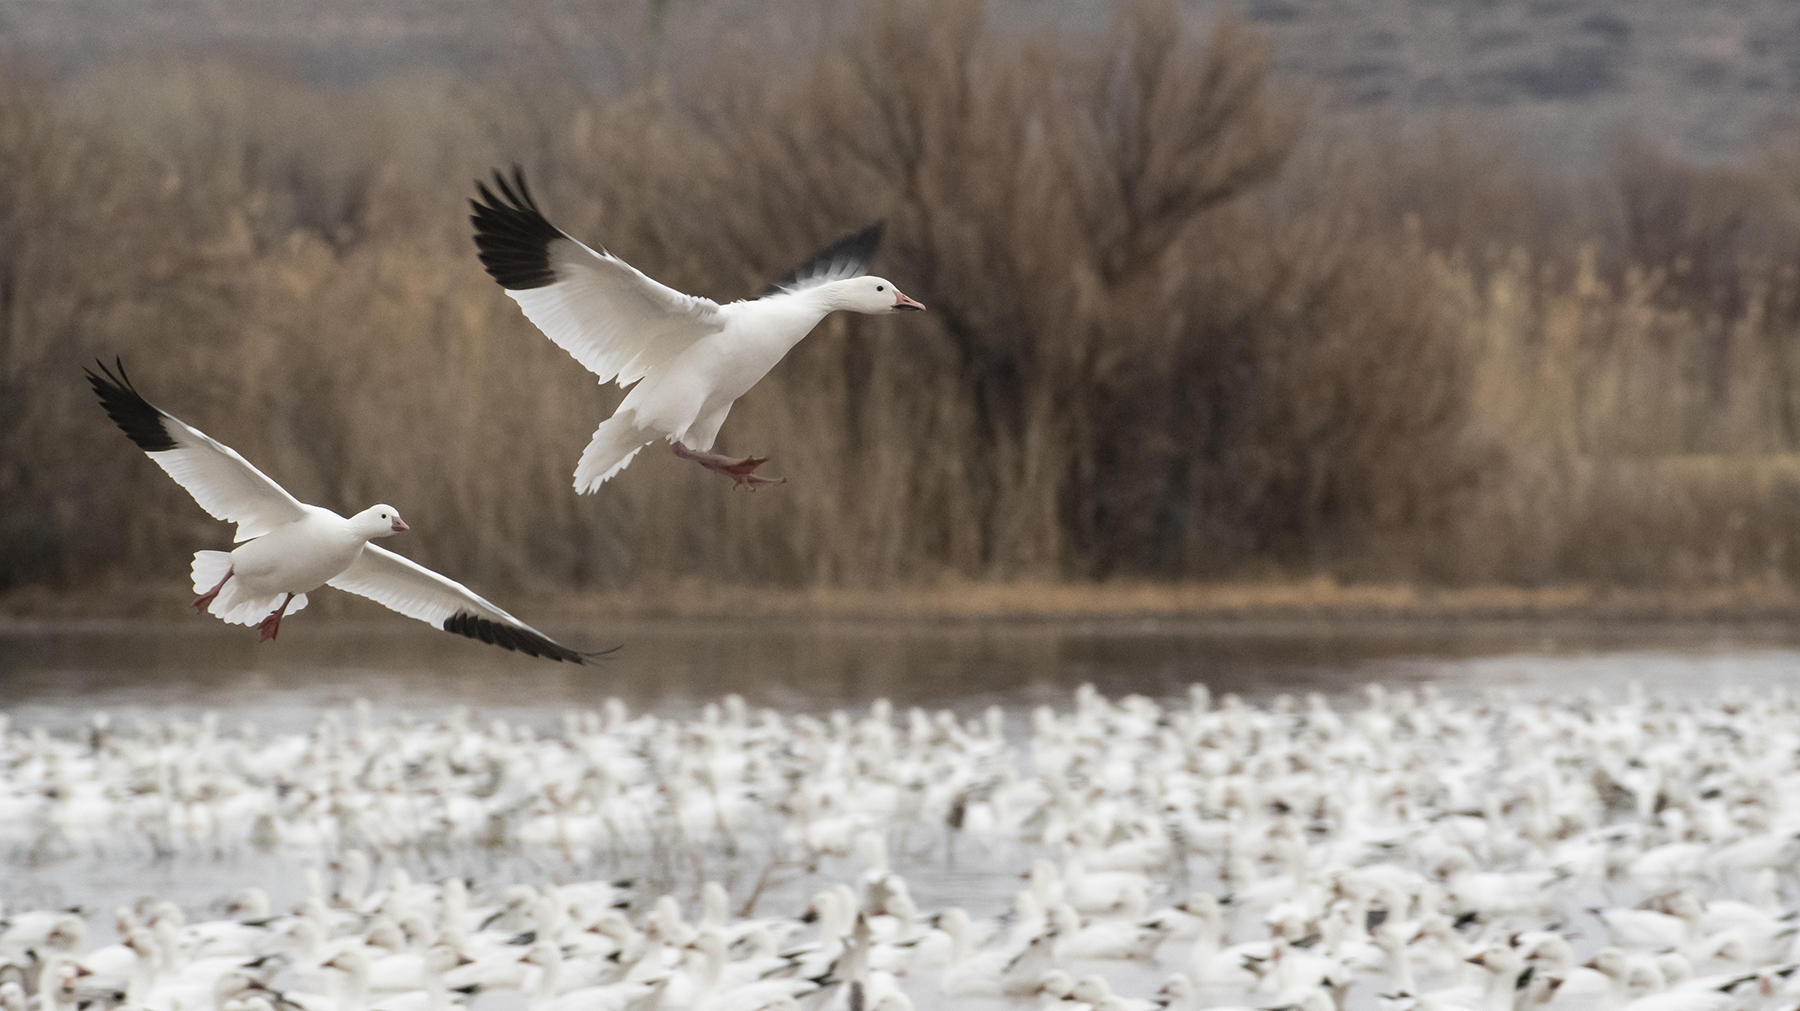 Marlene_Miyamoto_Great North American Migrations_Snow Geese 2_2.jpg